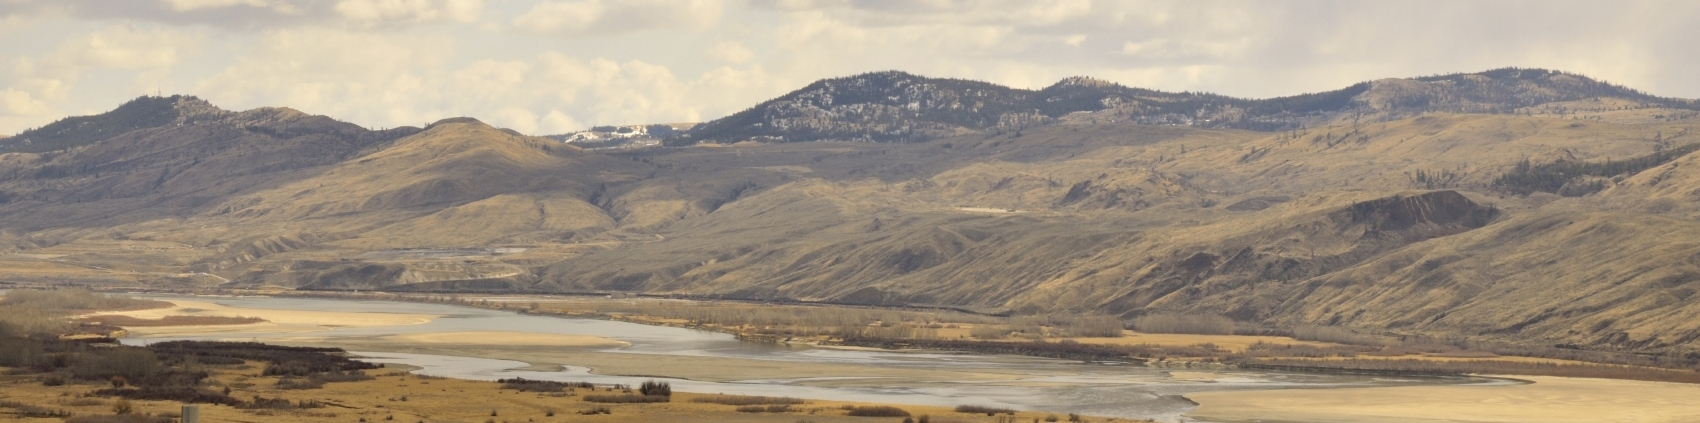 istock zoom-Kamloops Header Edit.jpg